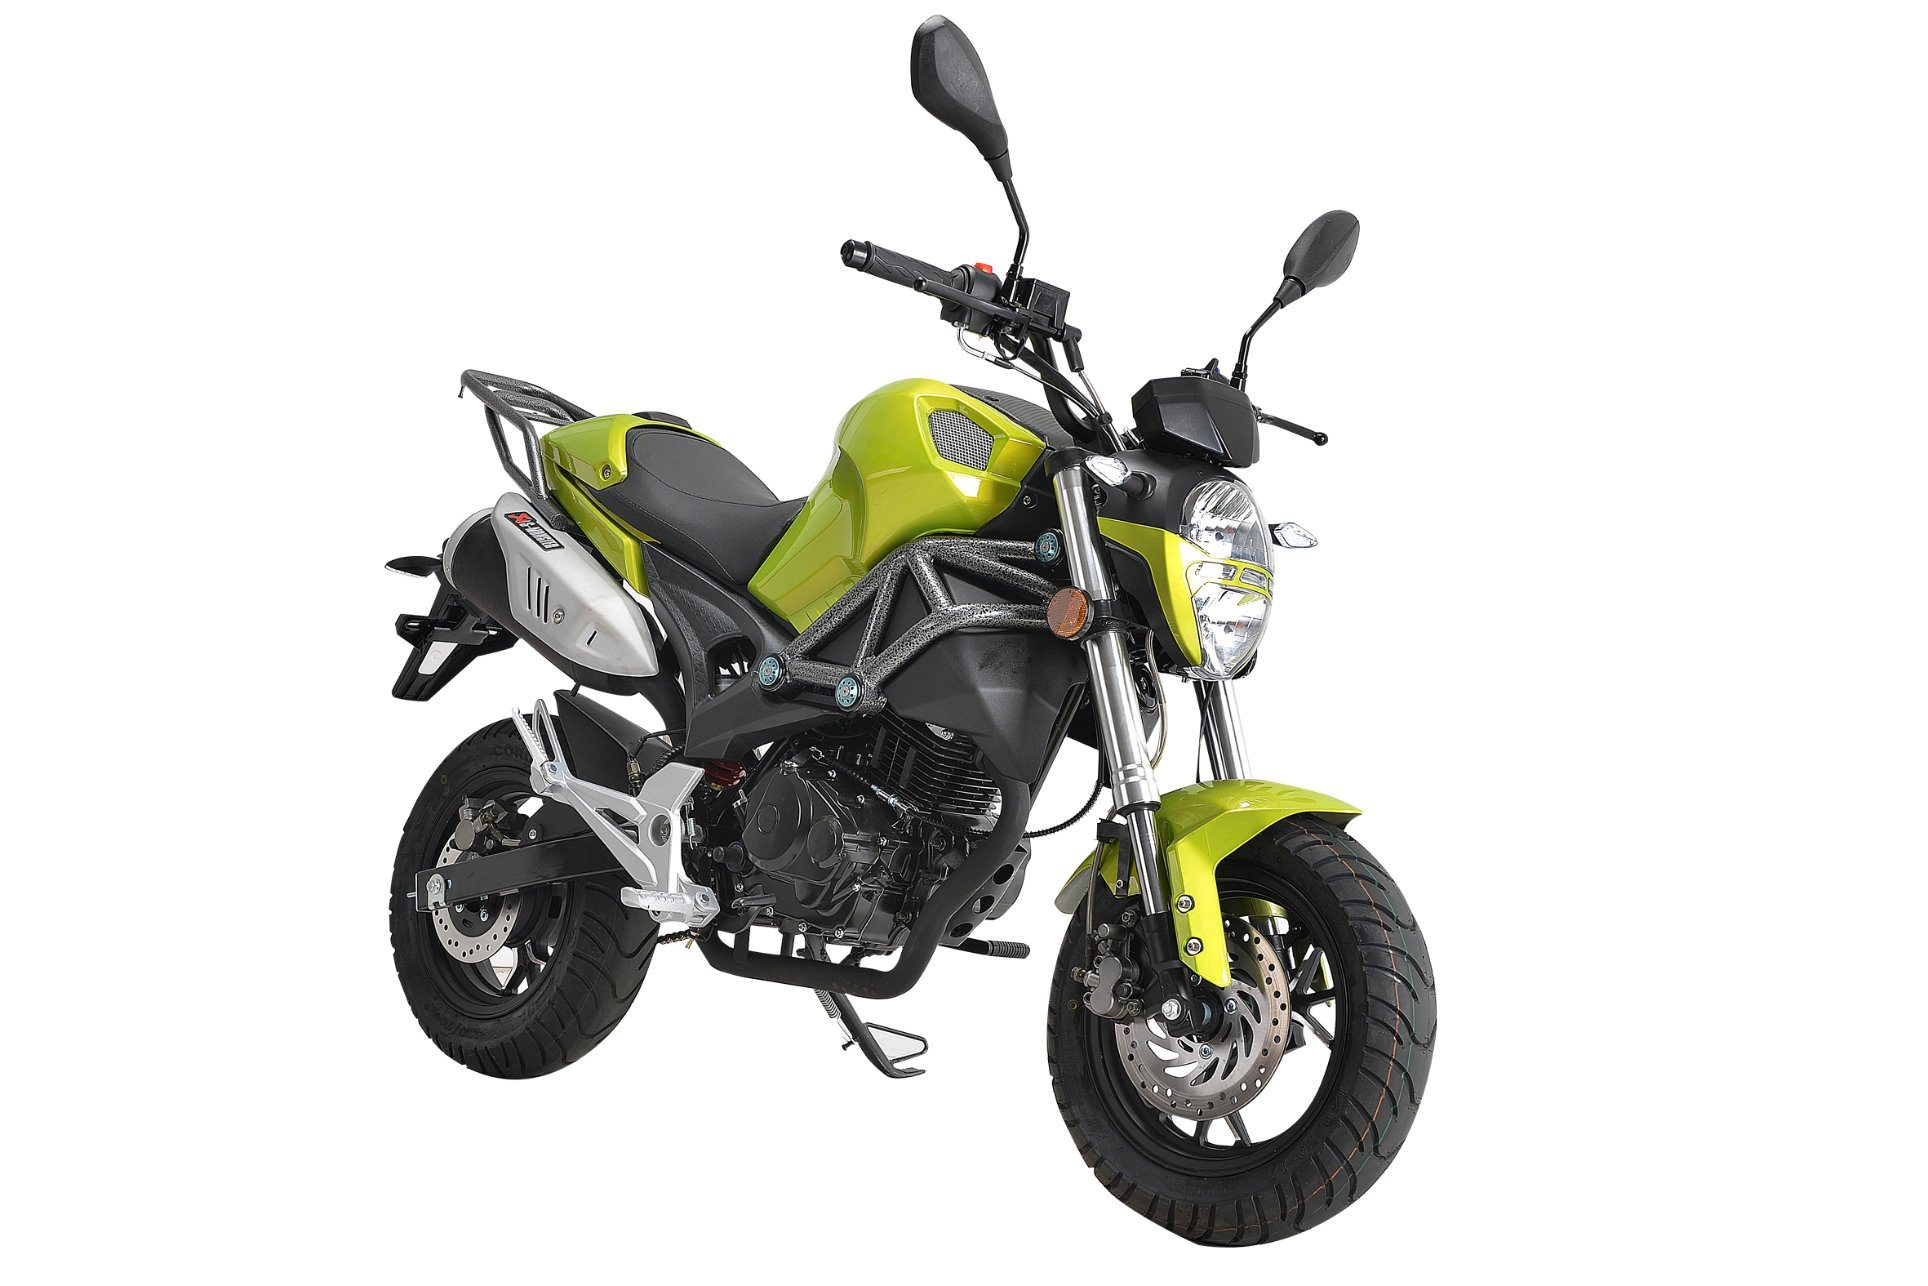 Knightliness Motorcycle, 125cc